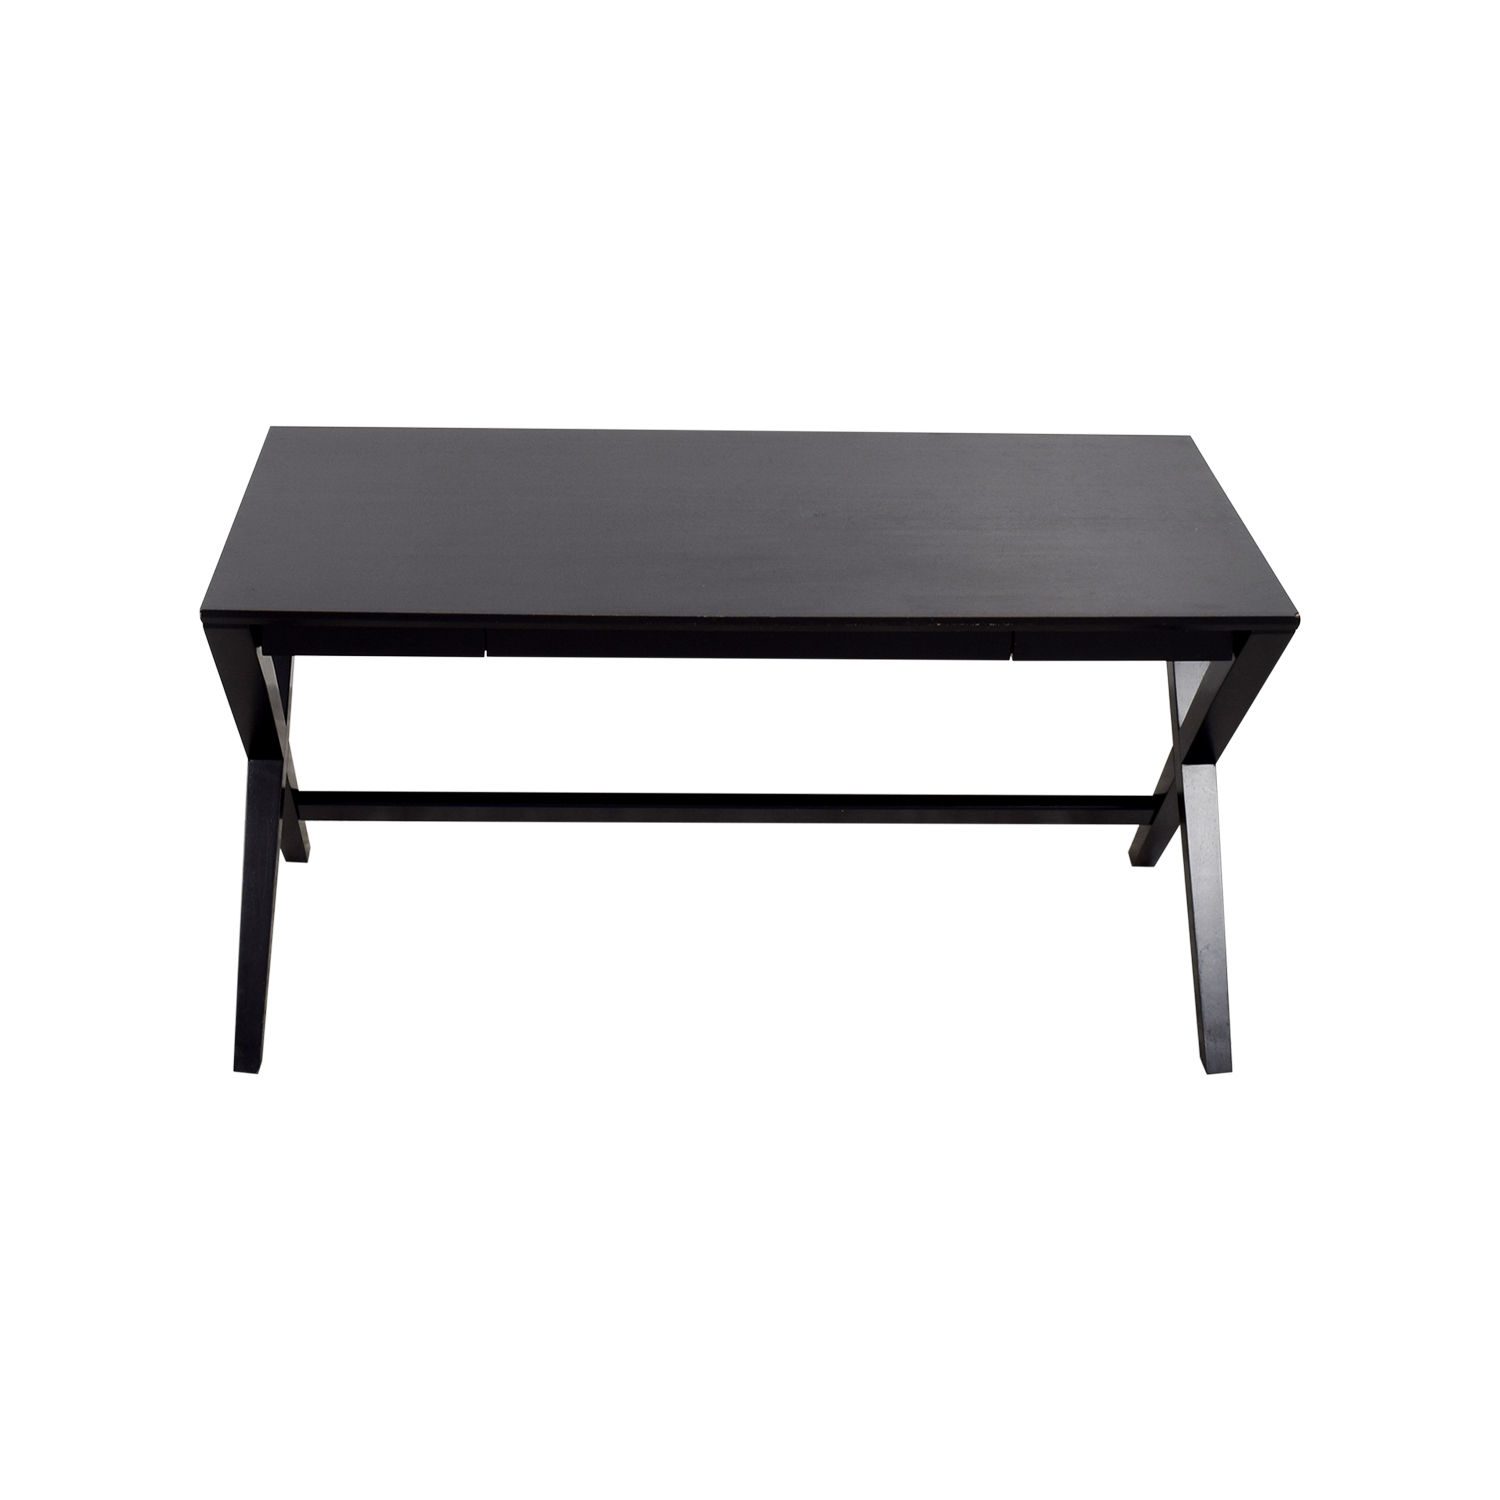 Crate & Barrel Spotlight Ebony Desk sale